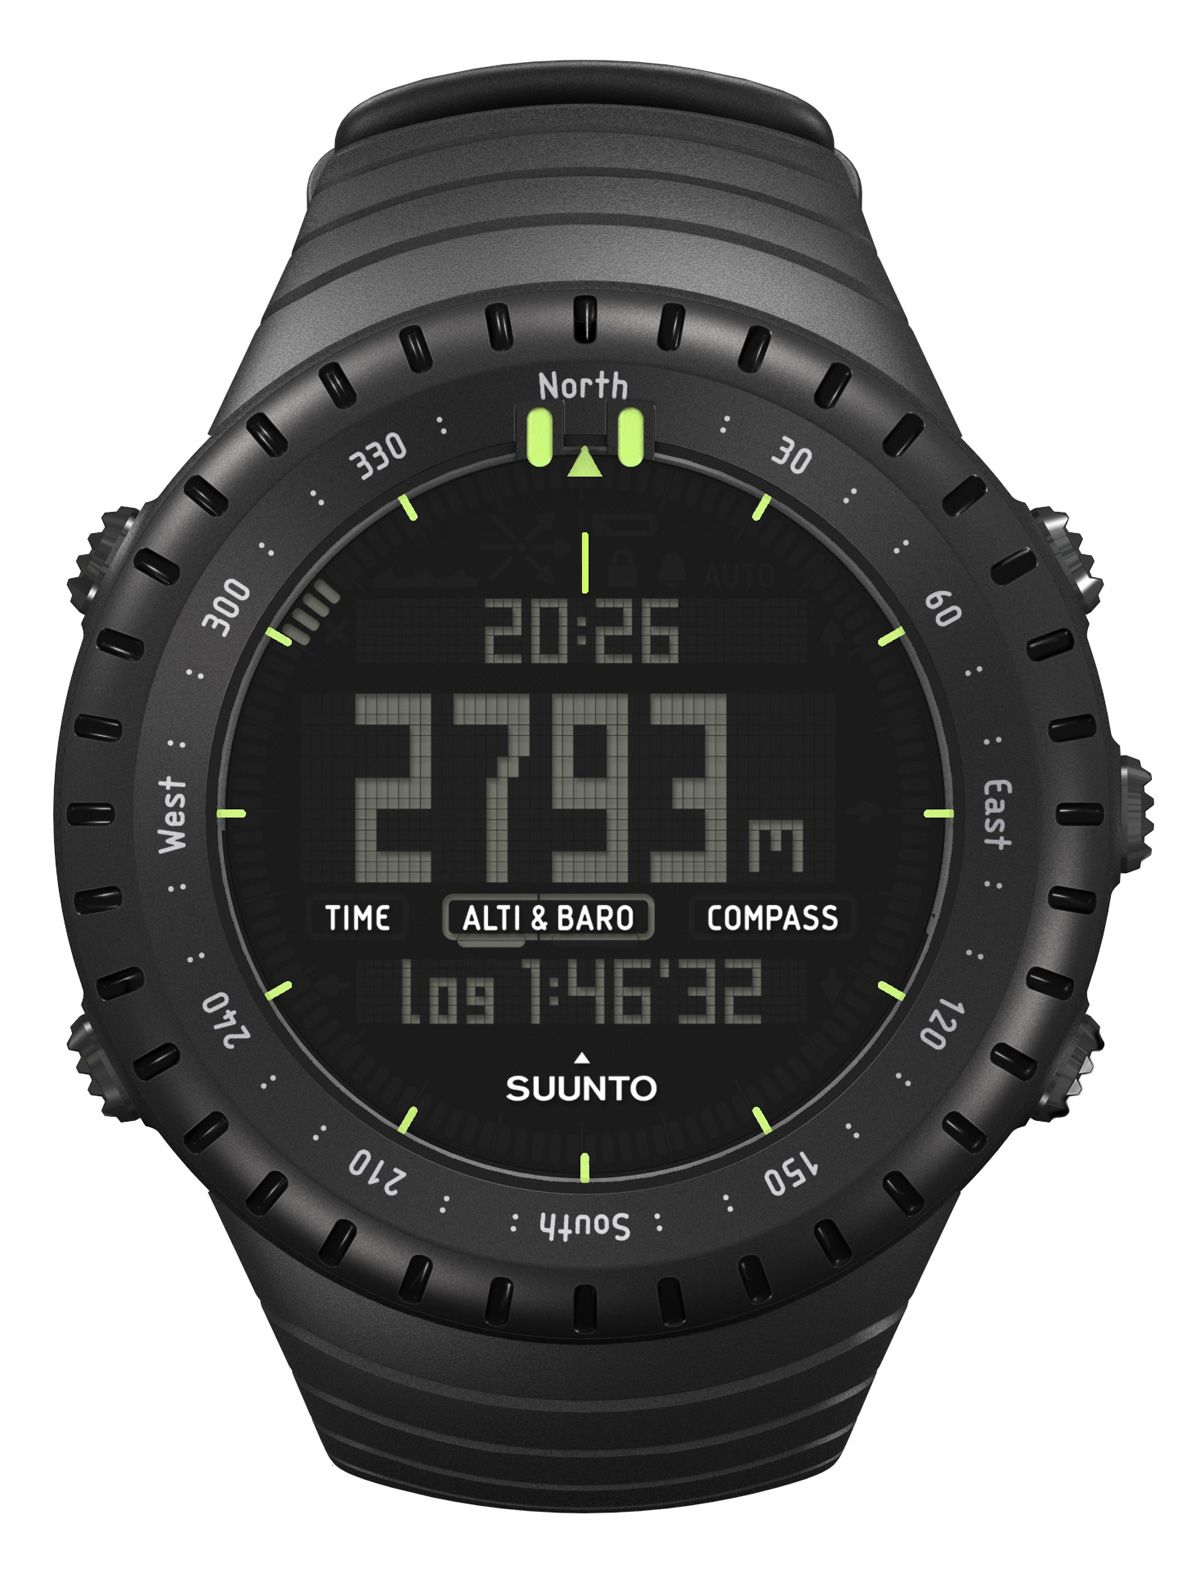 Suunto Core Watch gonna get me one of these Sportuhr